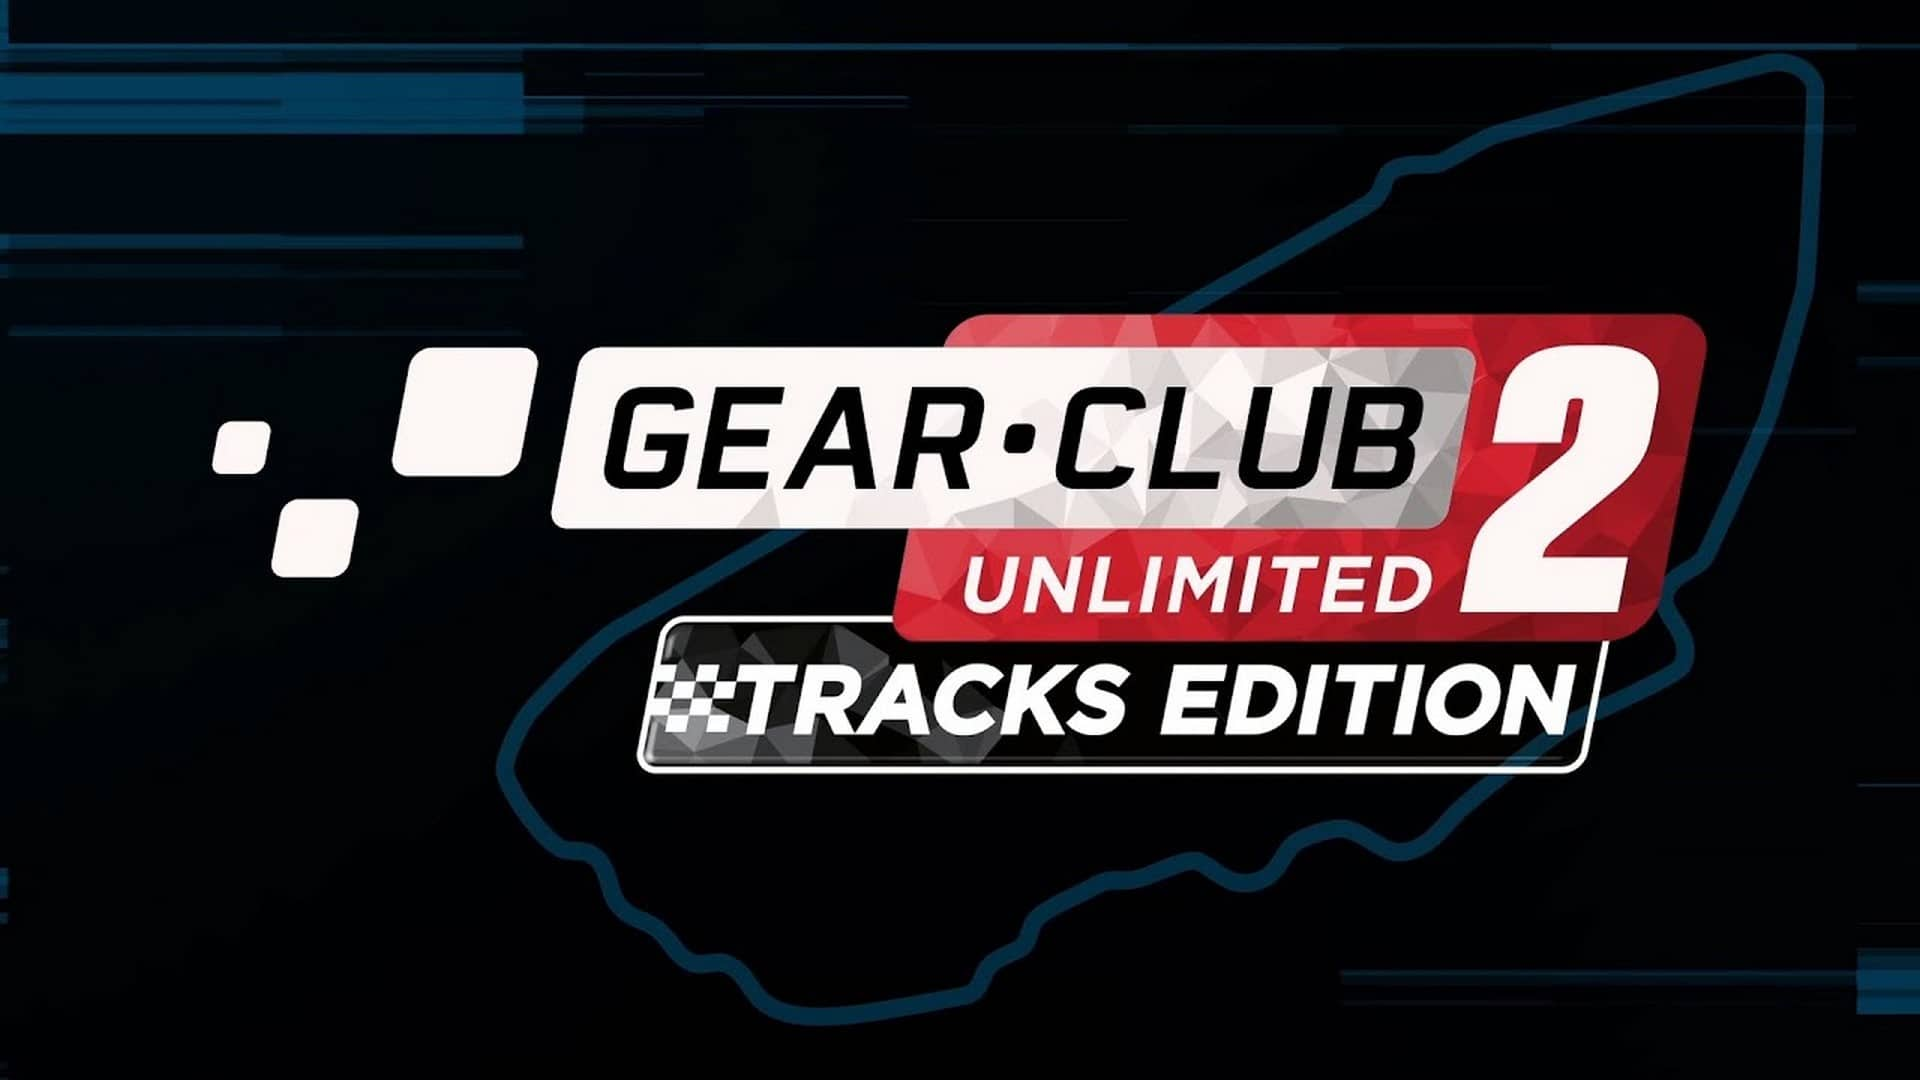 Gear.Club Unlimited 2 Tracks Edition aangekondigd